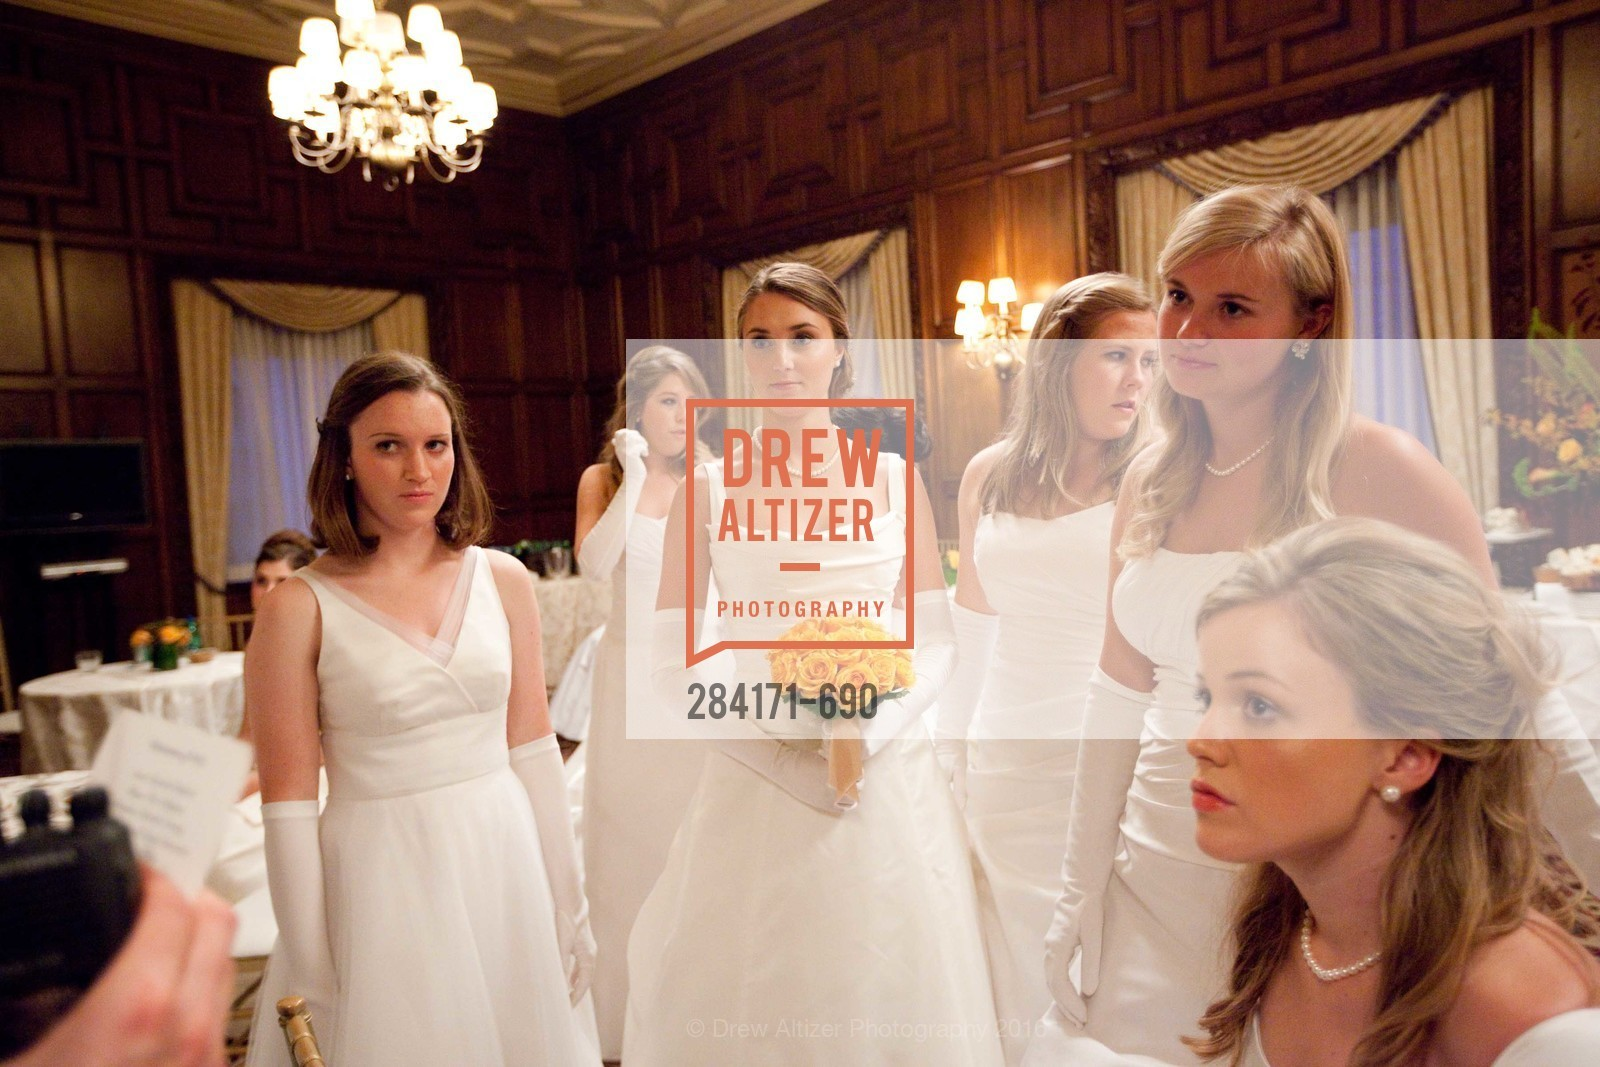 Eloise Horn, Victoria Student, Sarah Bedford, Kelly Gillfillan, Emma Jesberg, Averell Edmondson, 2009 Debutante Ball, Unknown, July 4th, 2008,Drew Altizer, Drew Altizer Photography, full-service agency, private events, San Francisco photographer, photographer california